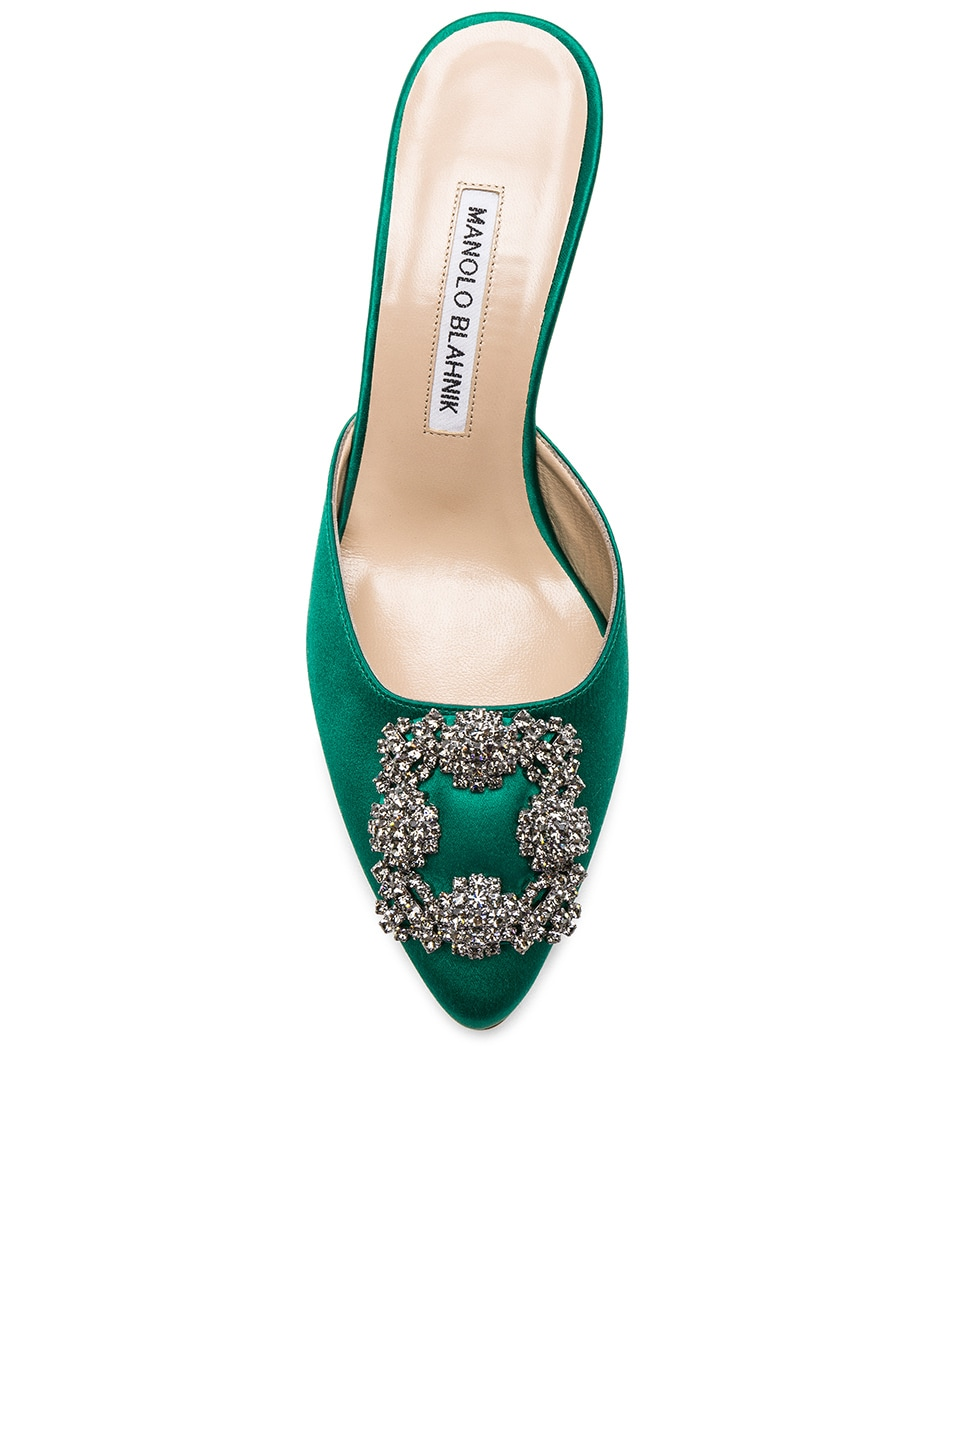 Image 4 of Manolo Blahnik Satin Hangisi 70 Mules in Green Satin